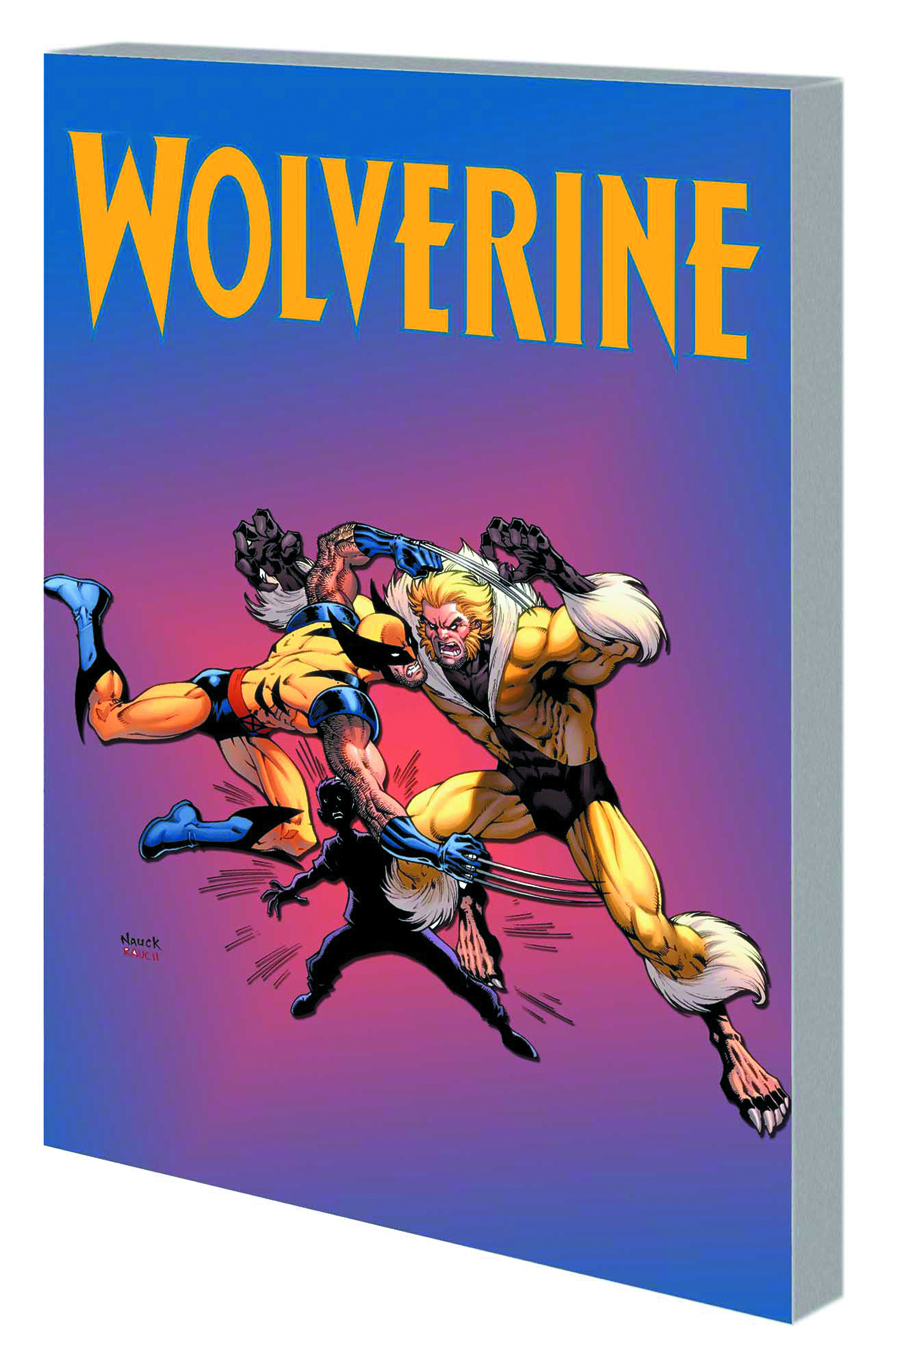 WOLVERINE YOUNG READERS NOVEL TP